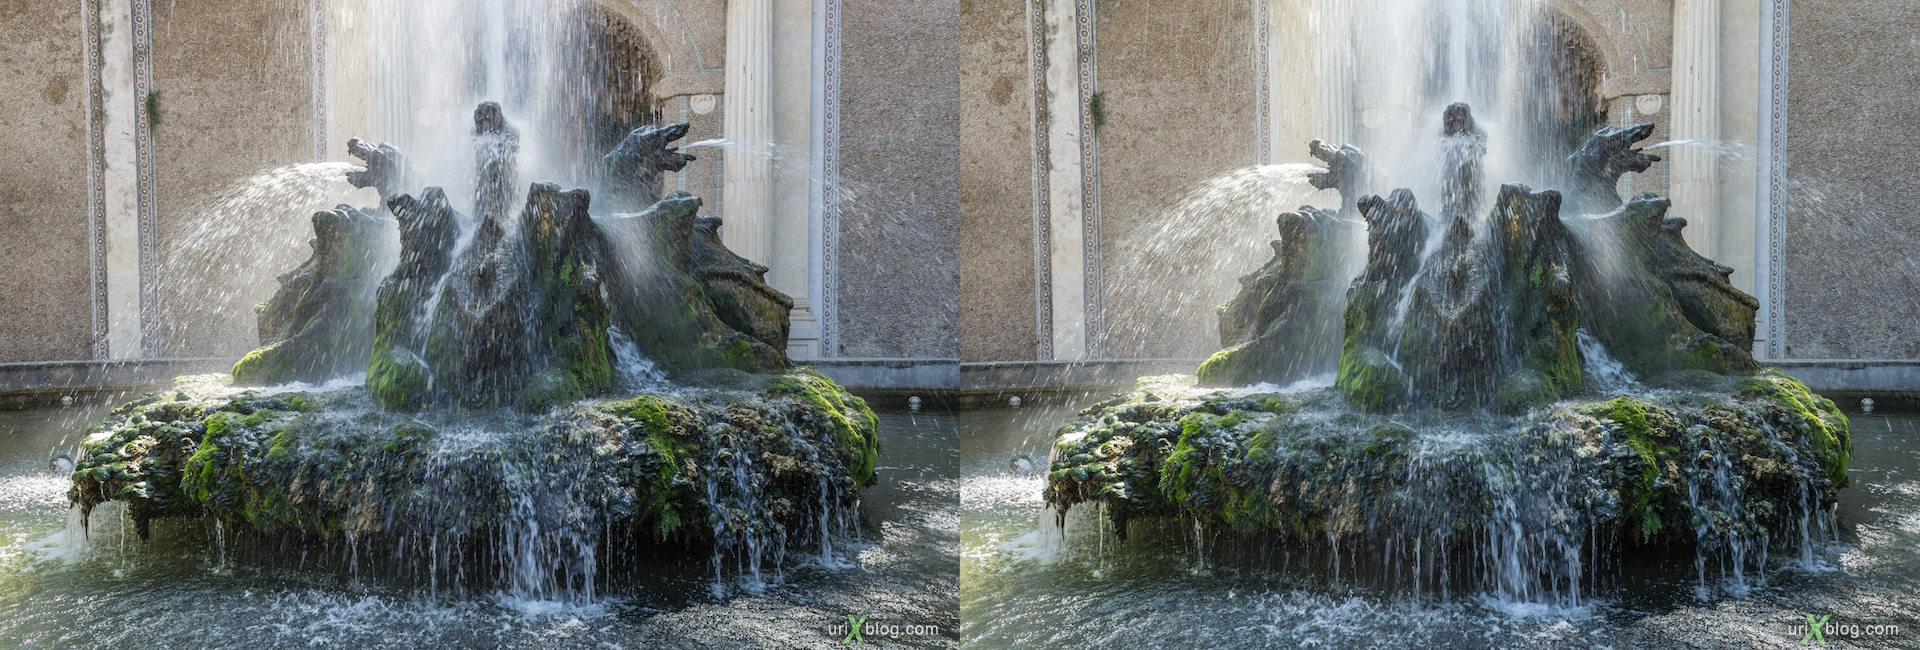 2012, Fontana dei Draghi, villa D'Este, Italy, Tivoli, Rome, 3D, stereo pair, cross-eyed, crossview, cross view stereo pair